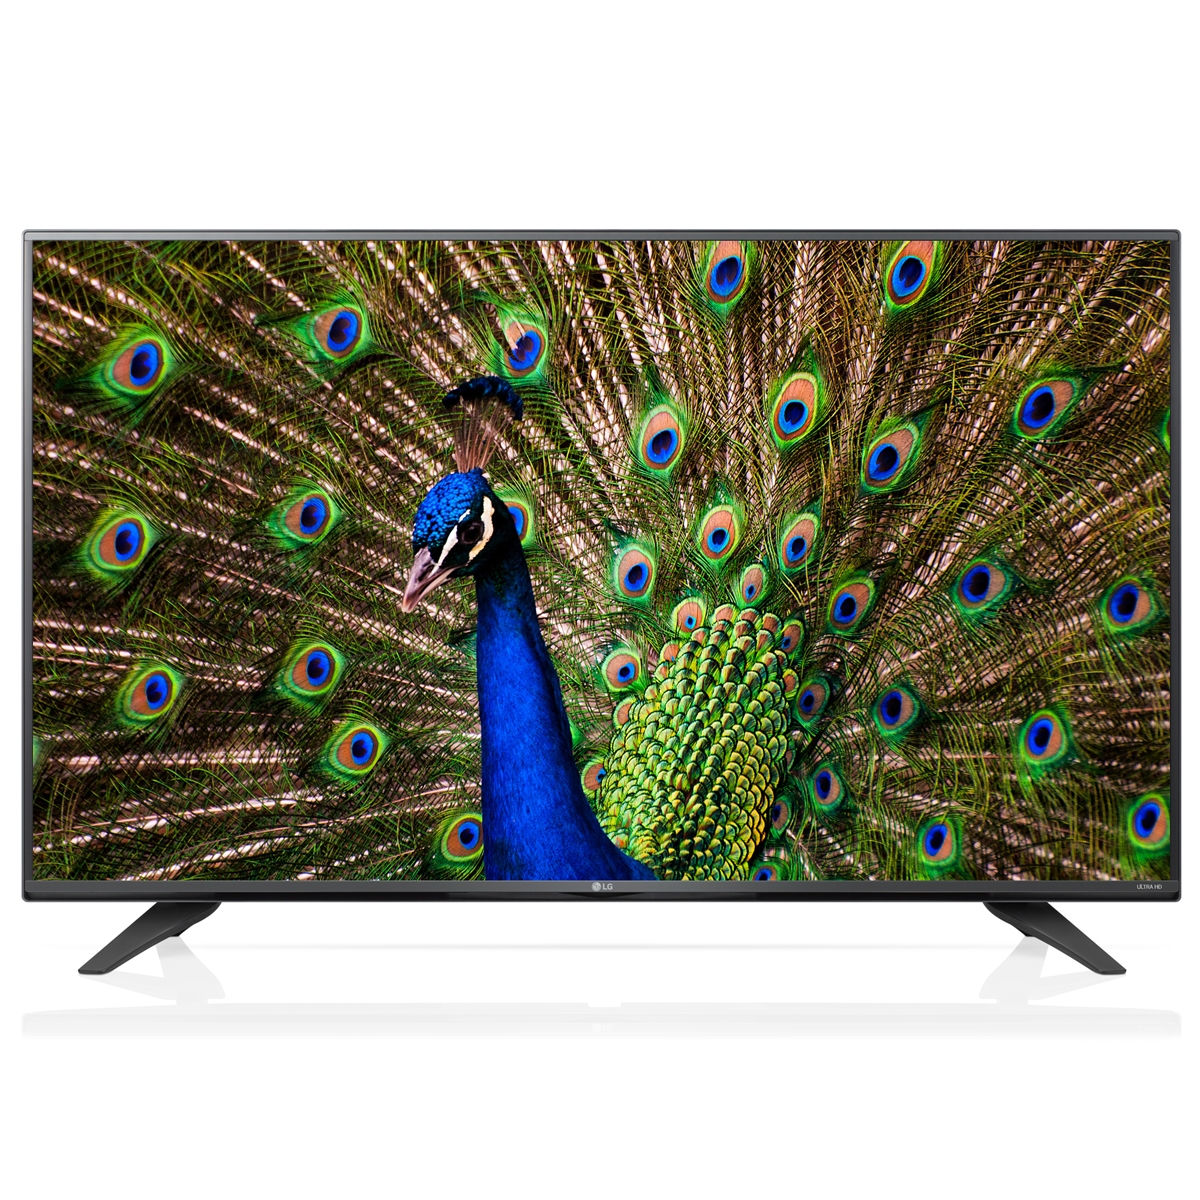 LG 79INCH CLASS UHD 4K LED SMART HDTV - 79UF7700 - RESIDENTIAL USA VERSION -LG ORIGINAL PANEL - FULL ONE YEAR MANUFACTURERS WARRANTY!